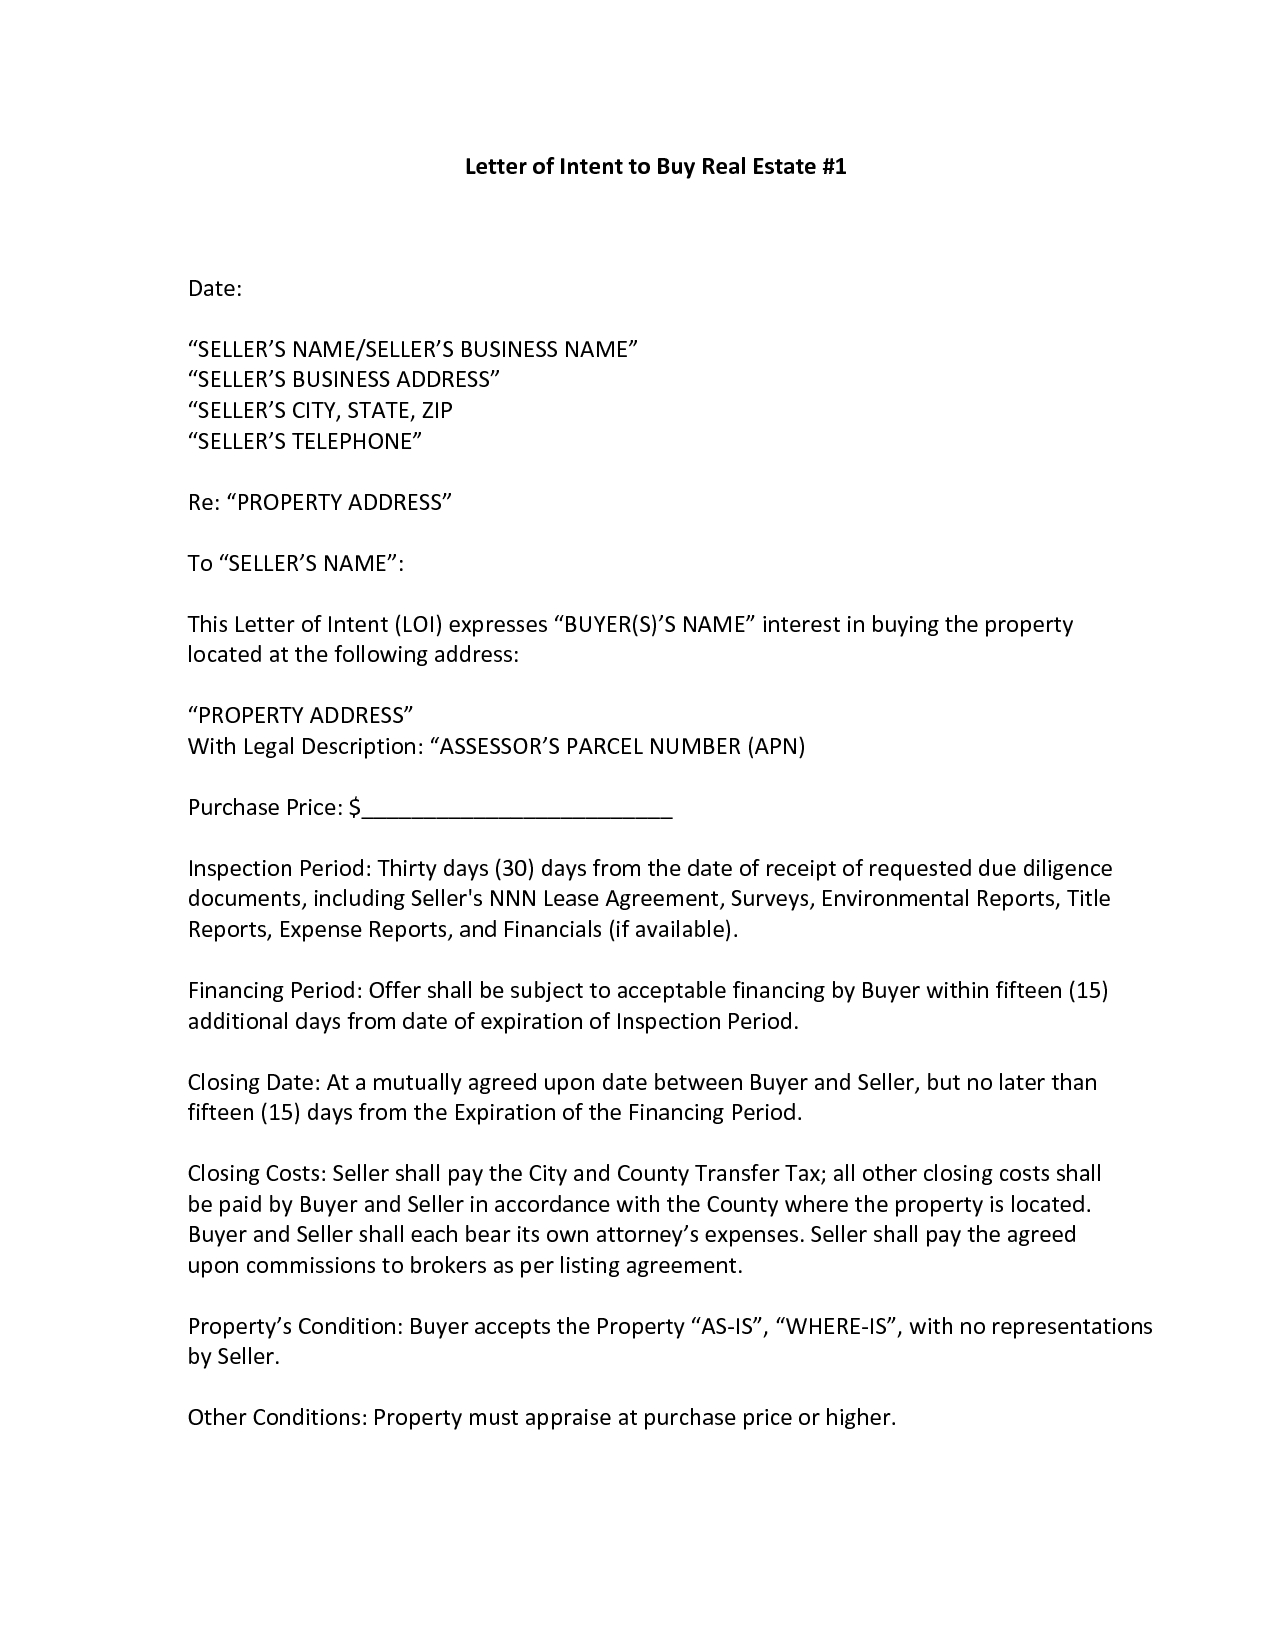 letter of intent to purchase land template example-Sample Letter Intent Purchase Real Estate New Property fer Template Uk Graphics plete Simple 1-c